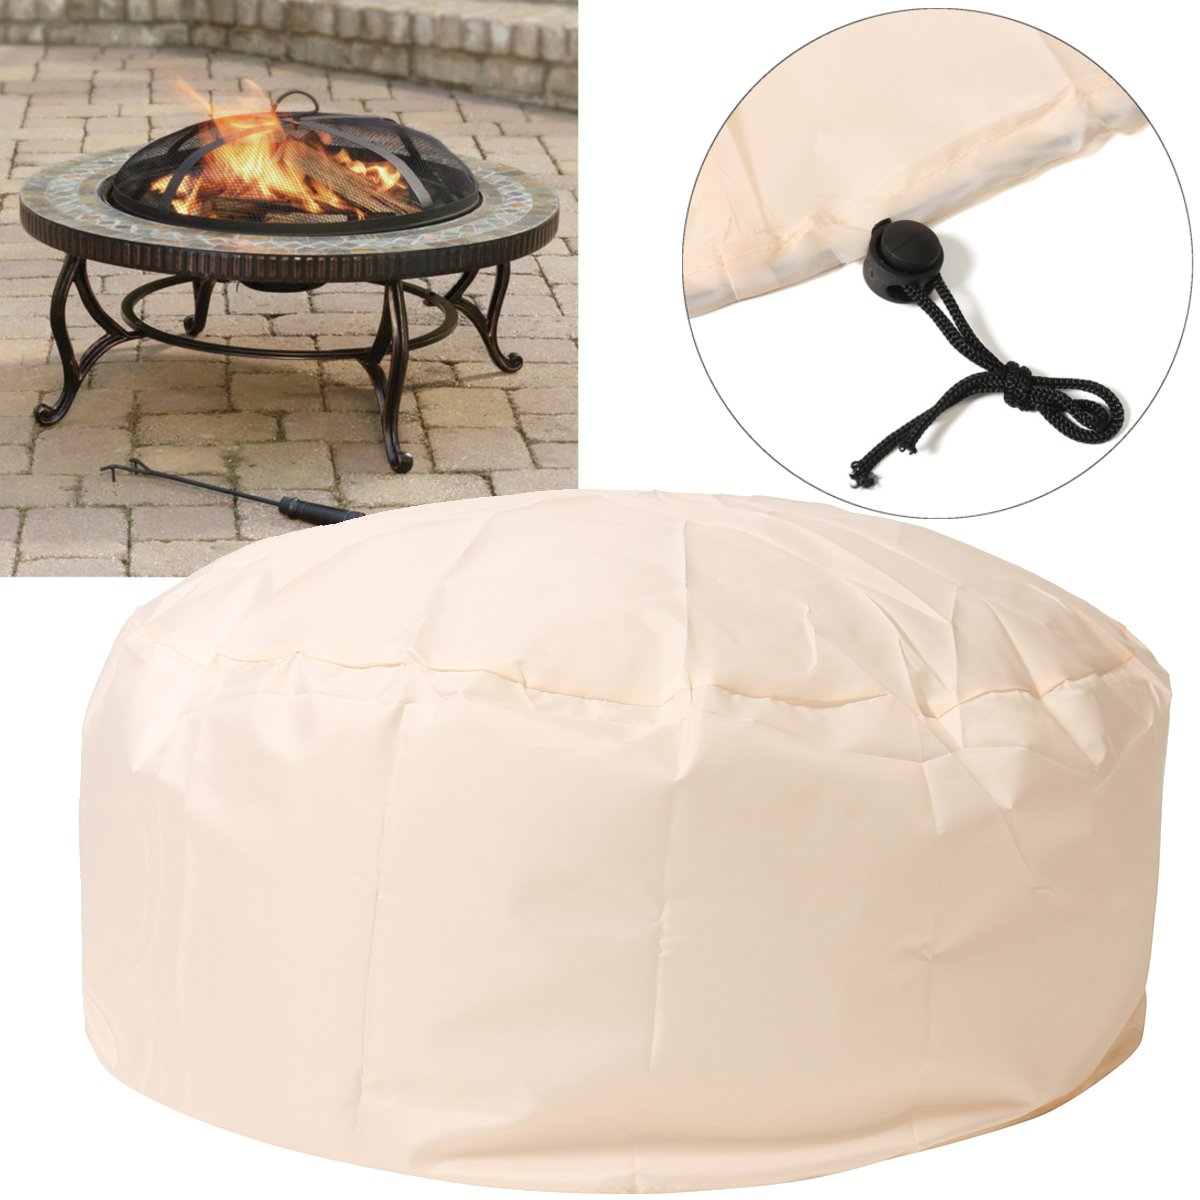 Essort Fire Pit Cover, 37'' Patio Round Fire Pit Cover with Drawstring UV Resistant Waterproof for Outdoor Grill BBQ Cook Beige